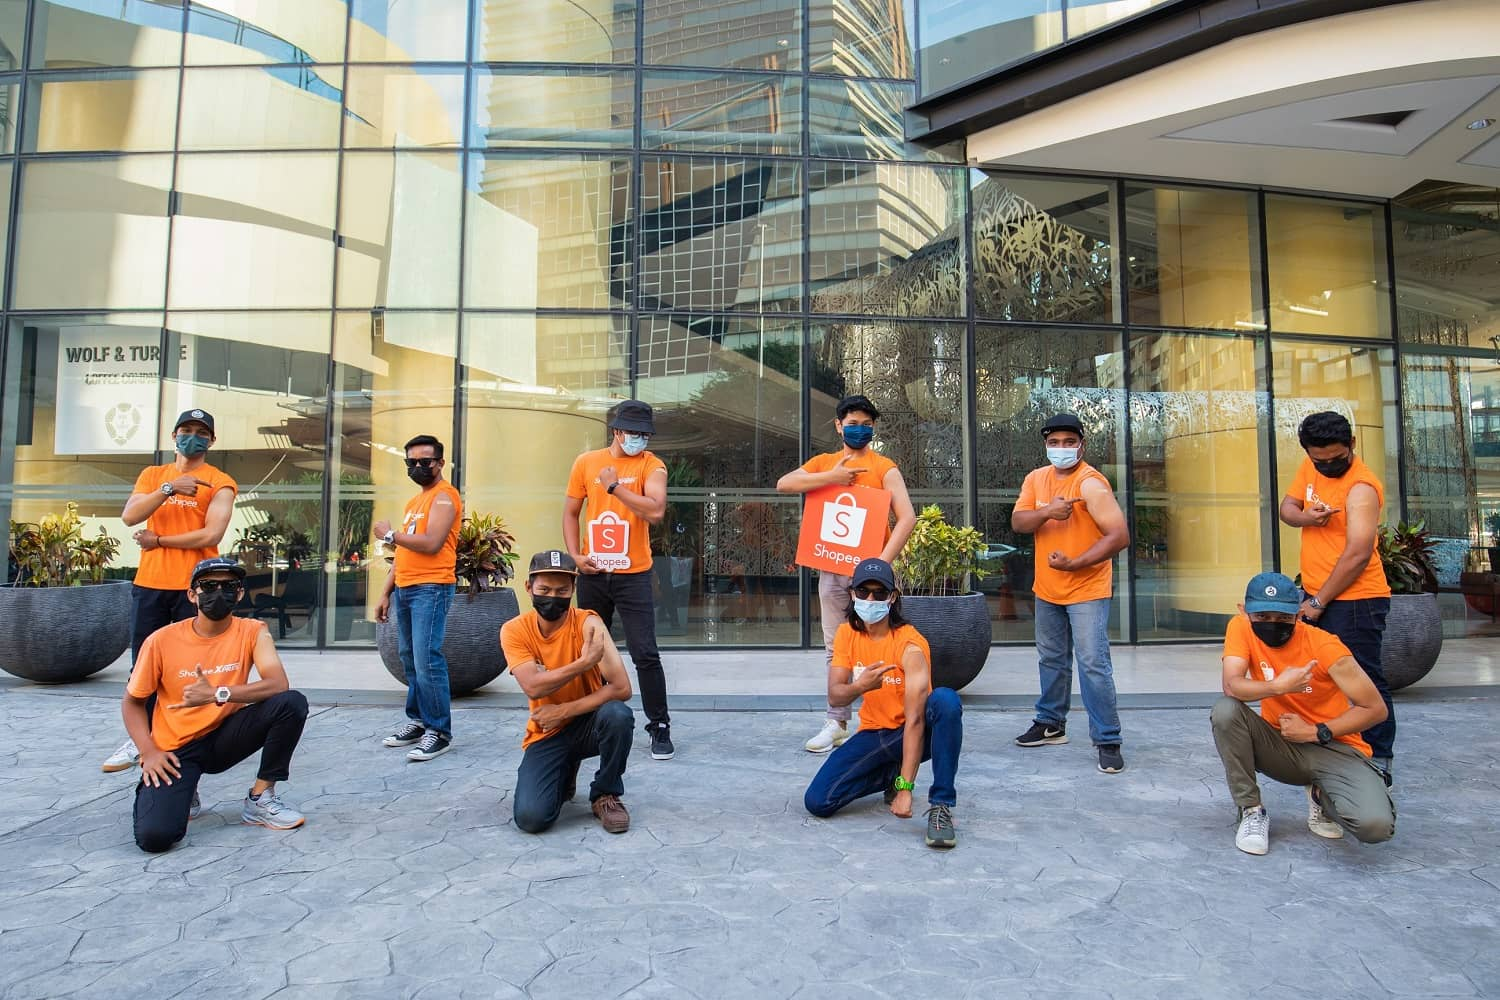 Shopee Rolls Out Company-Wide Staff Vaccination Programme To Protect Employees And Shoppers